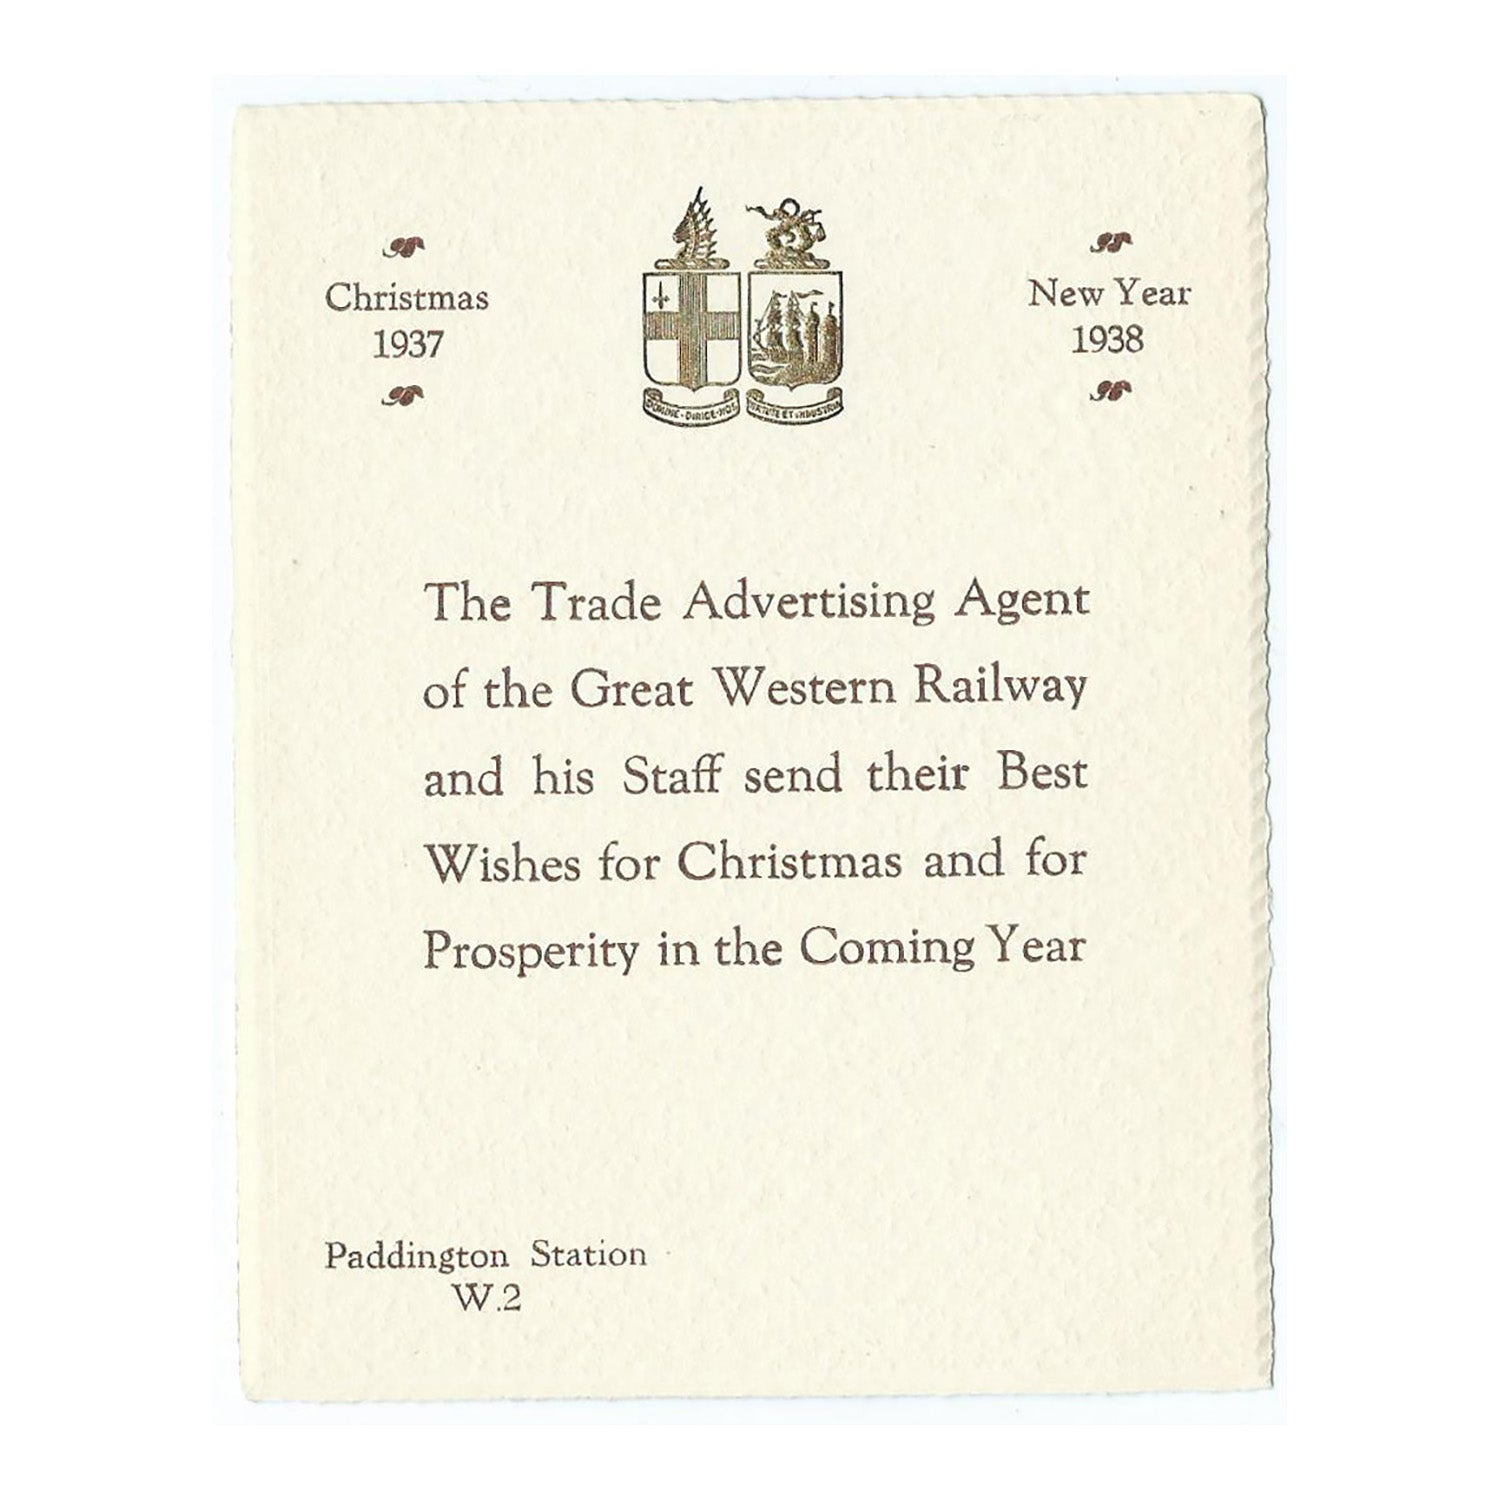 The Trade Advertising Agent of the Great Western Railway. Christmas Card.